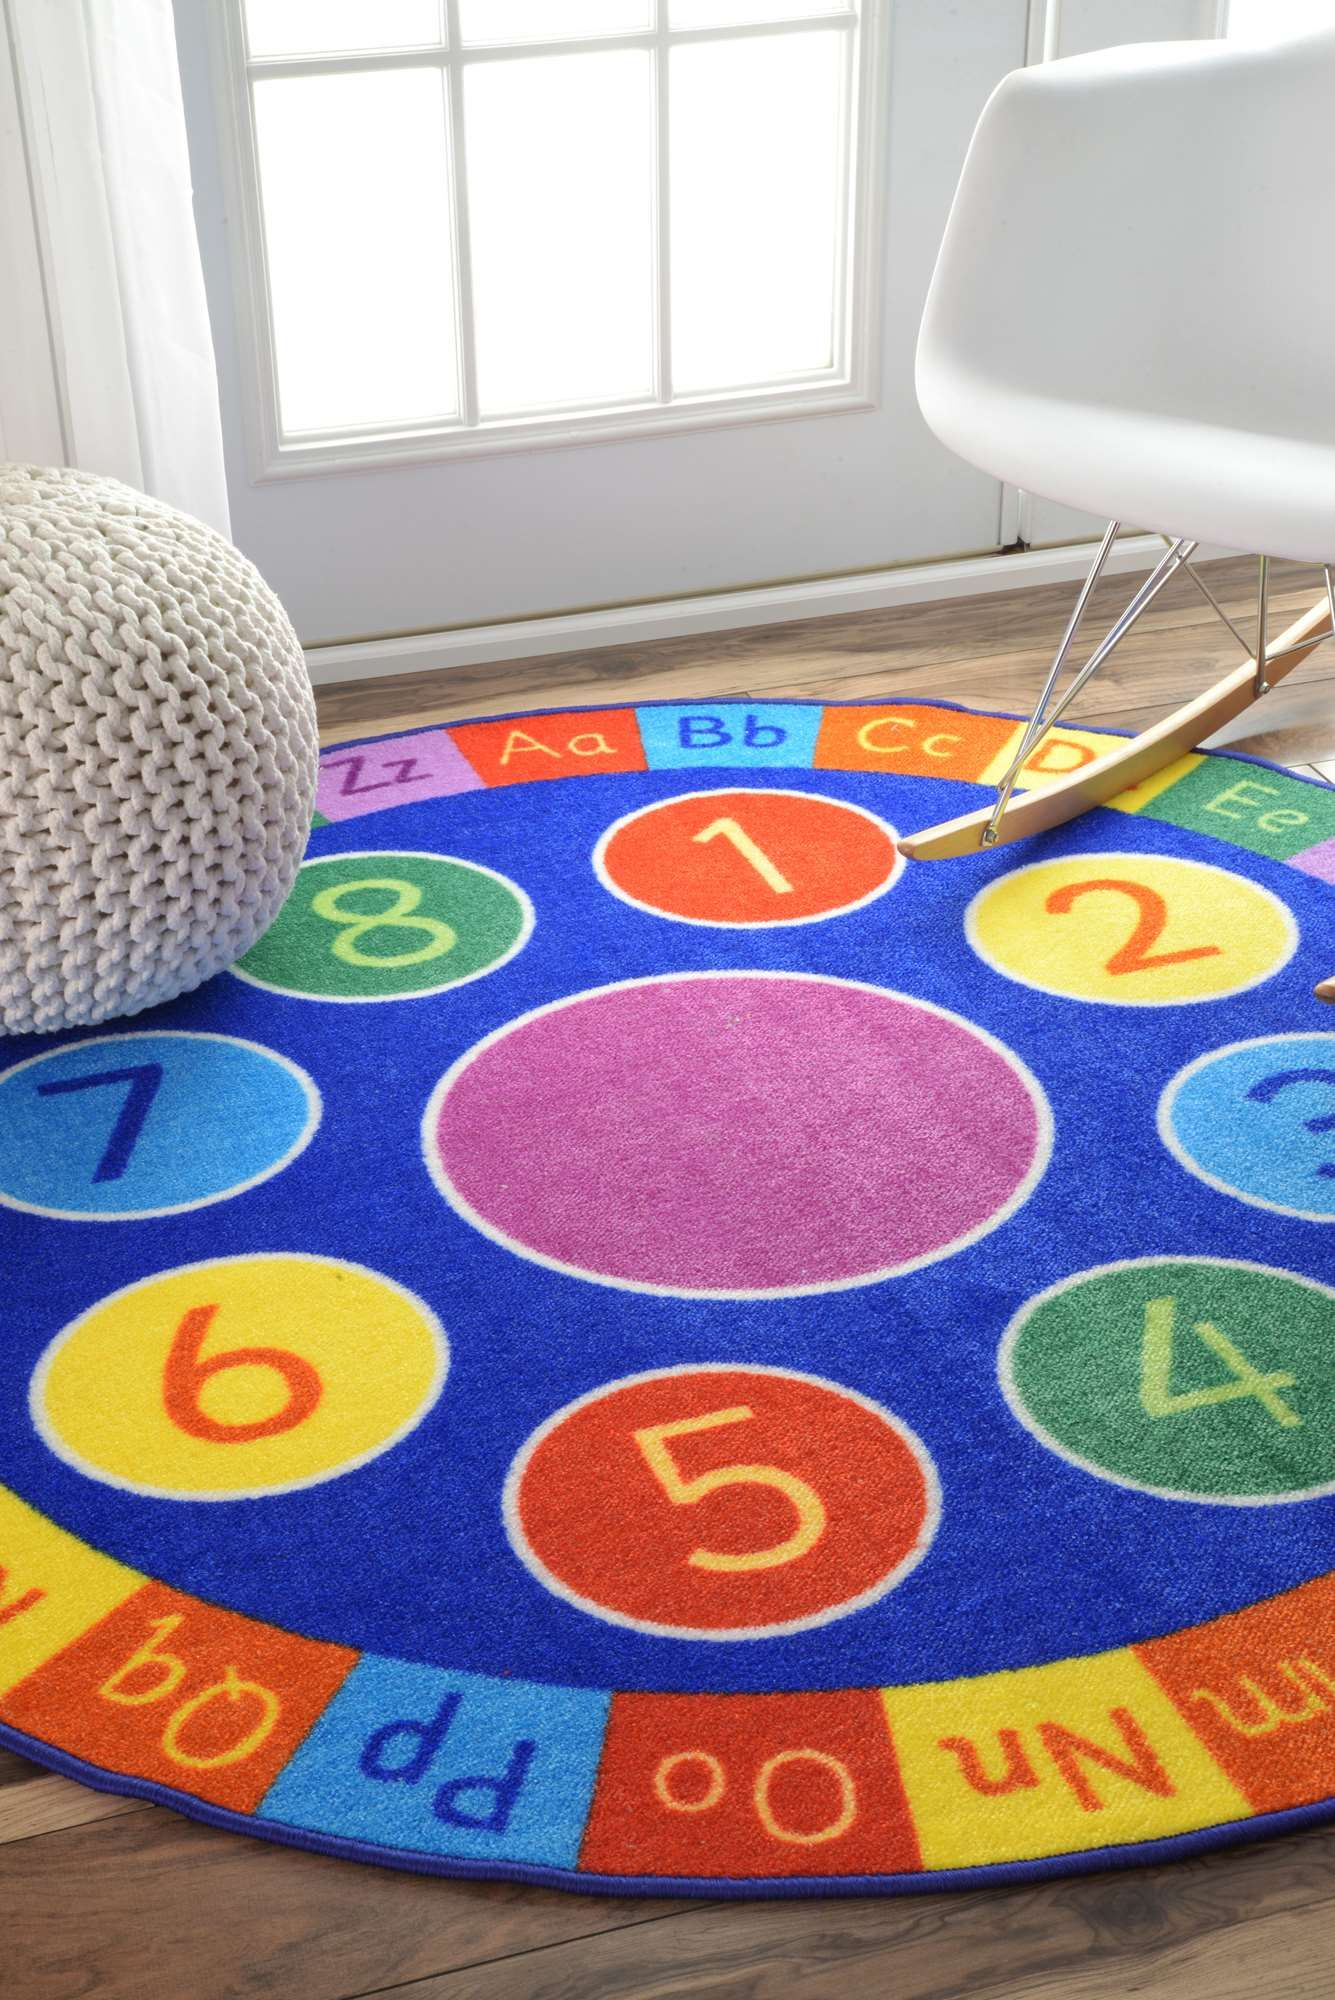 Contemporary Alphabet And Numbers Wheel Kids Area Rugs 5 Feet Diameter Round Made From The Finest Materials In World With Uttermost Care